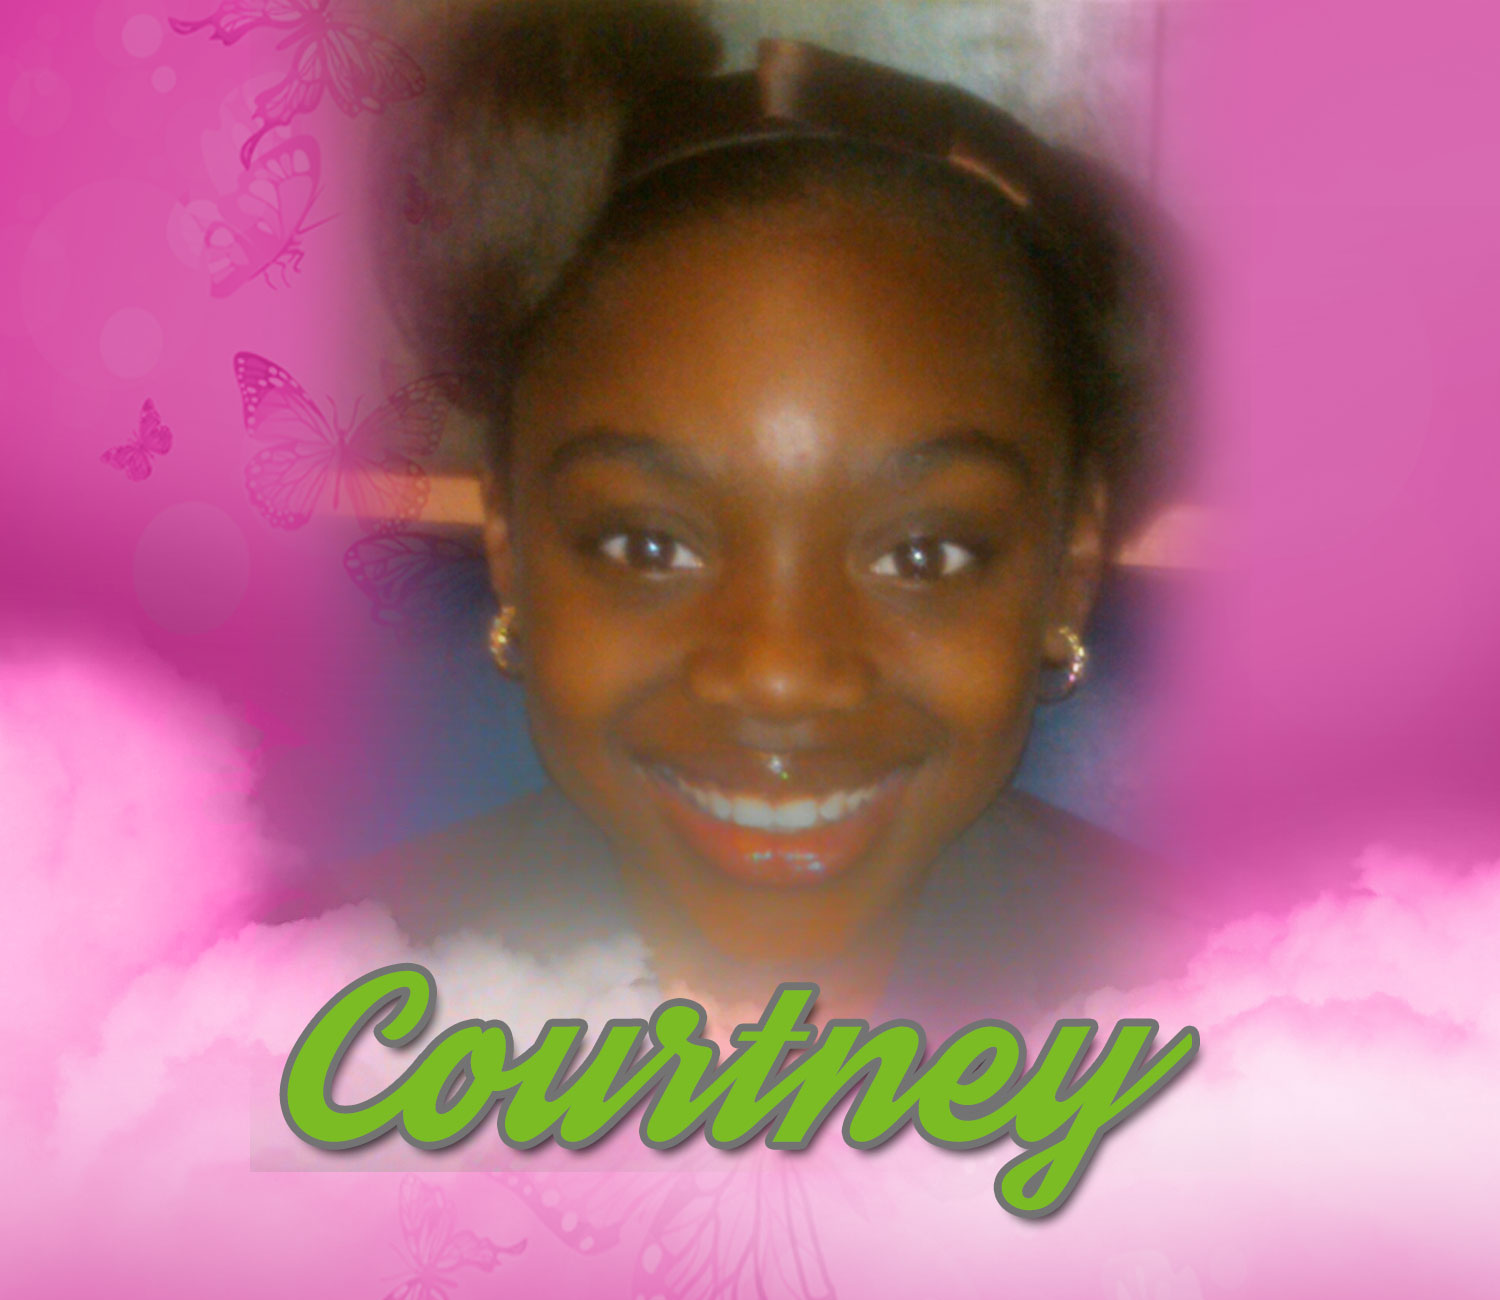 Meet Courtney